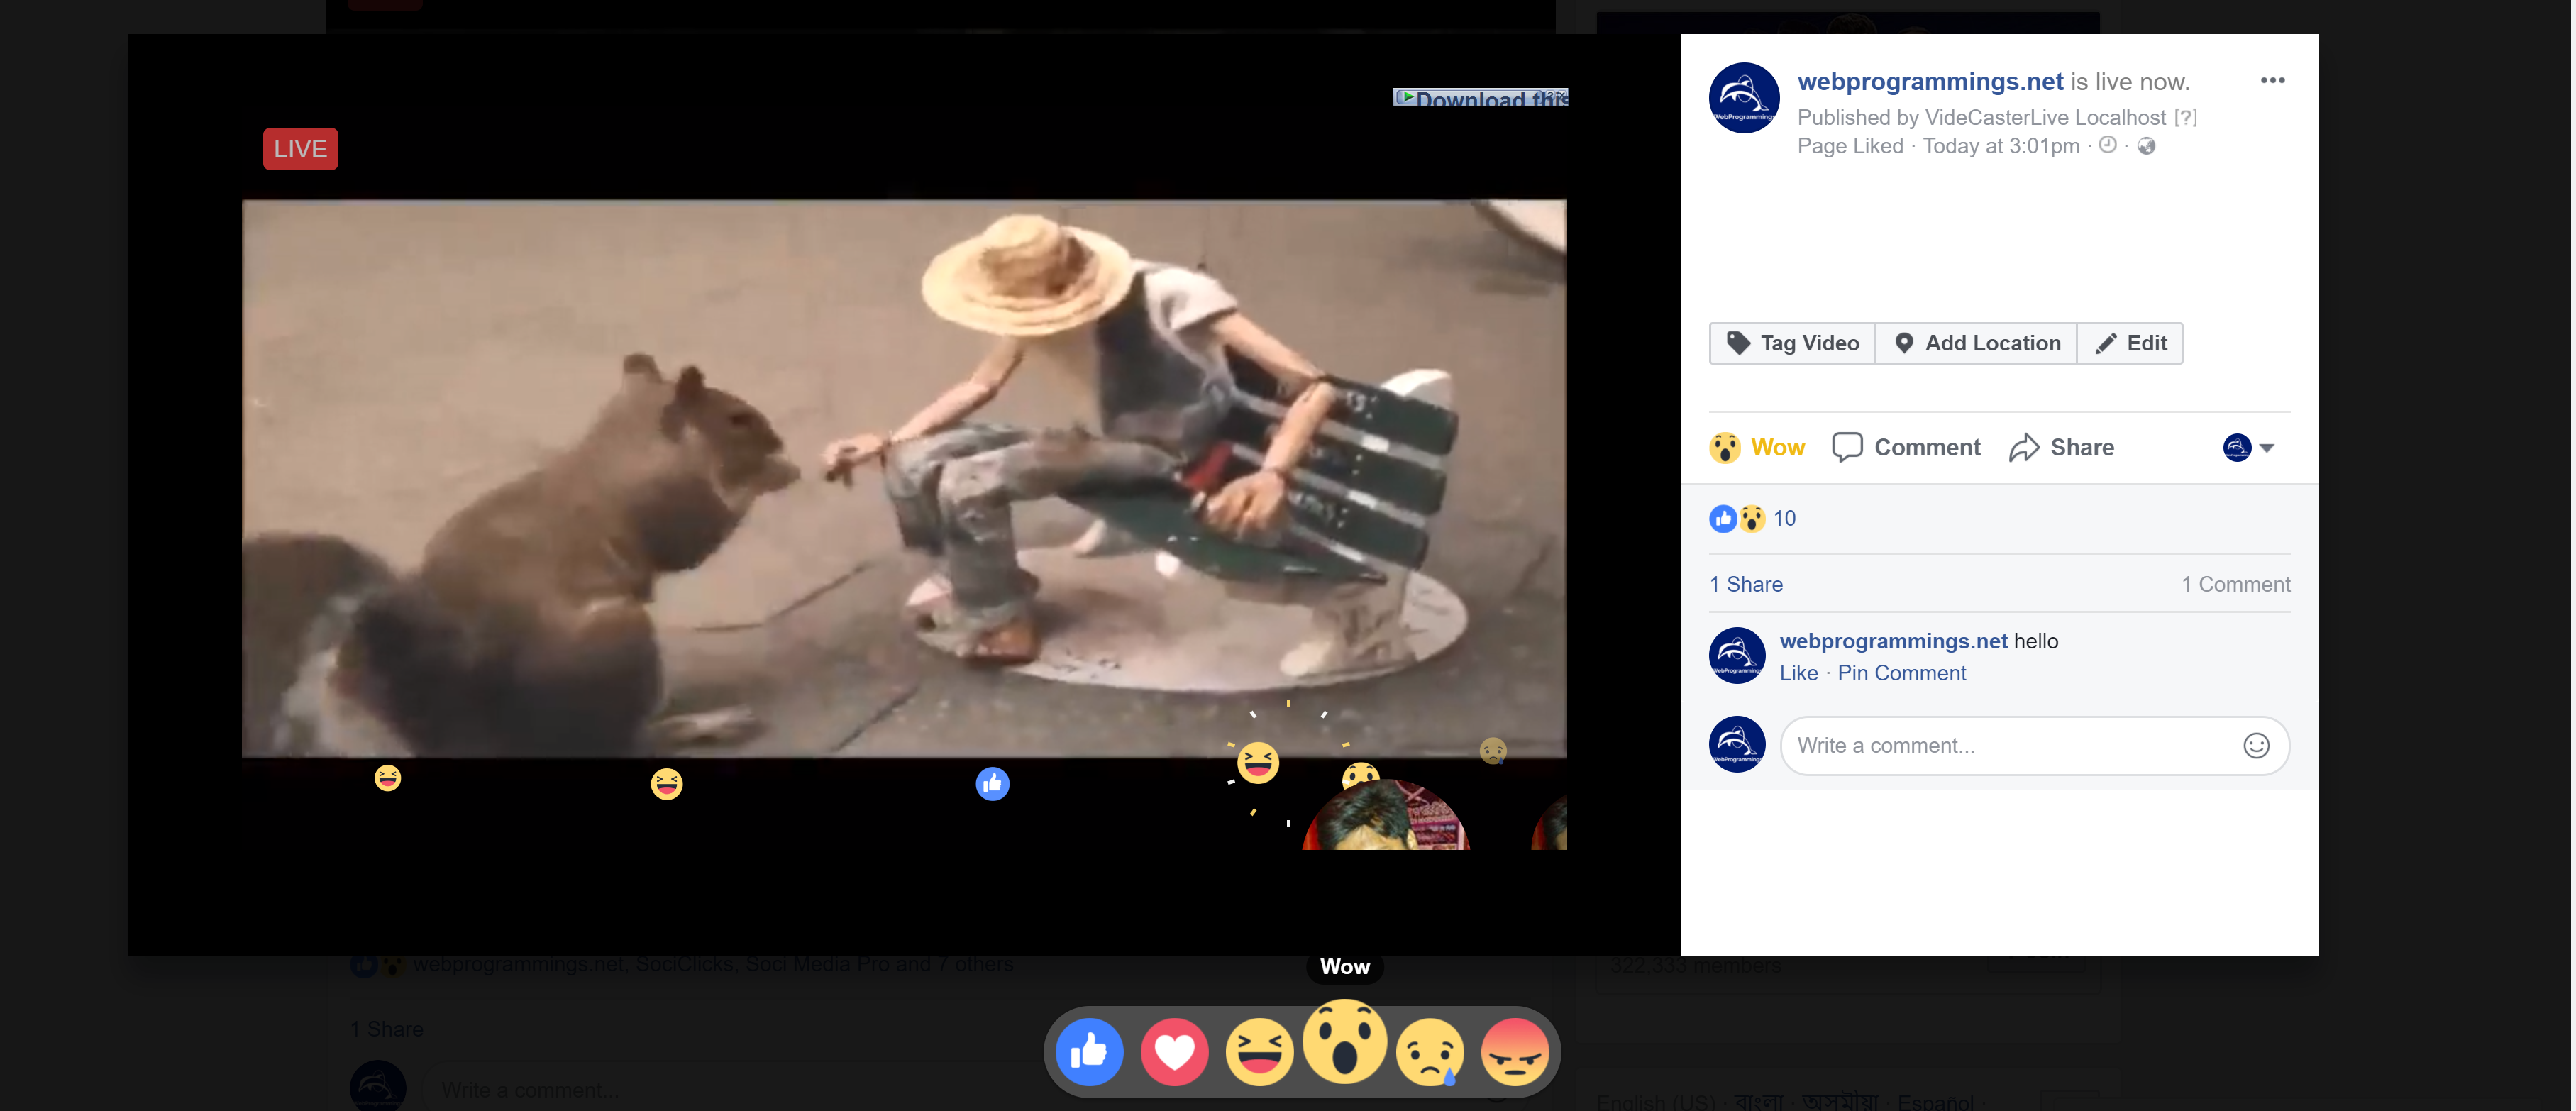 VidCasterLive - Go Live with Pre-recorded Video on Facebook